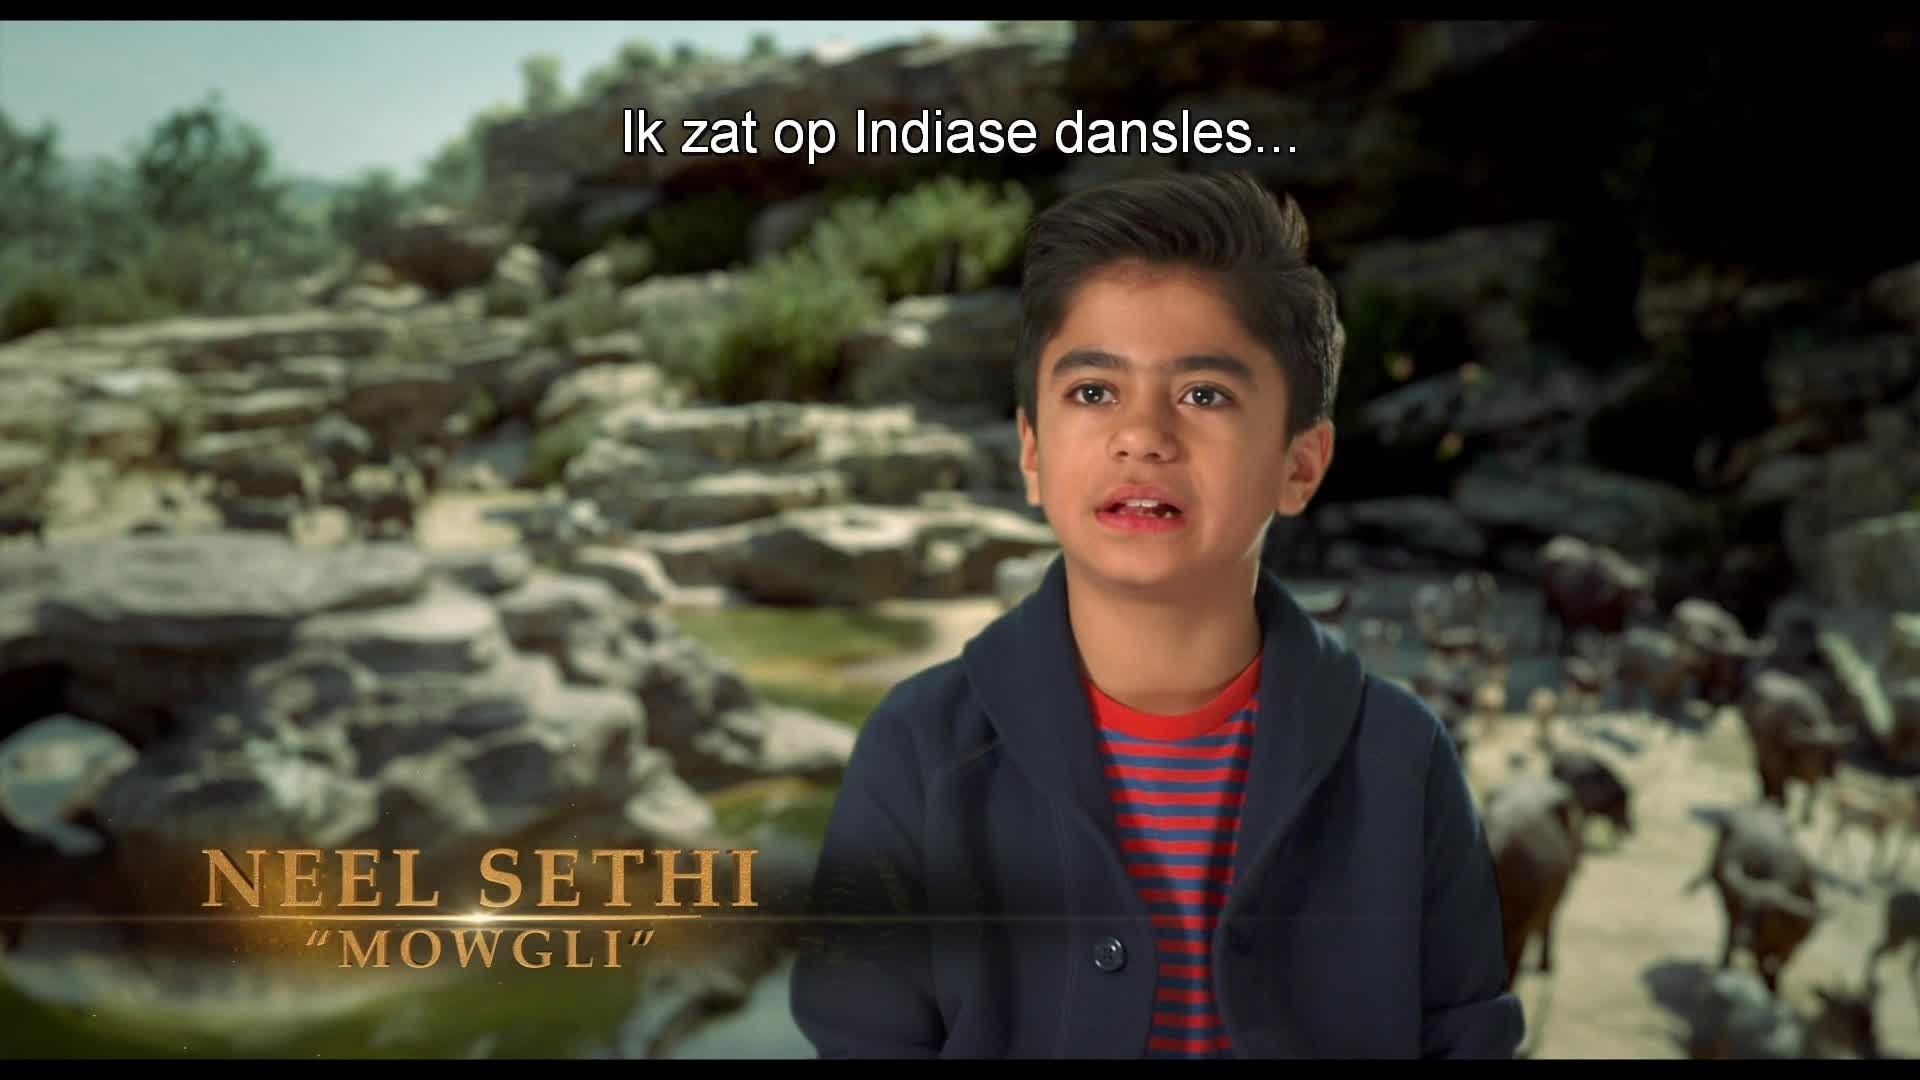 The Jungle Book - Auditie van Neel Sethi